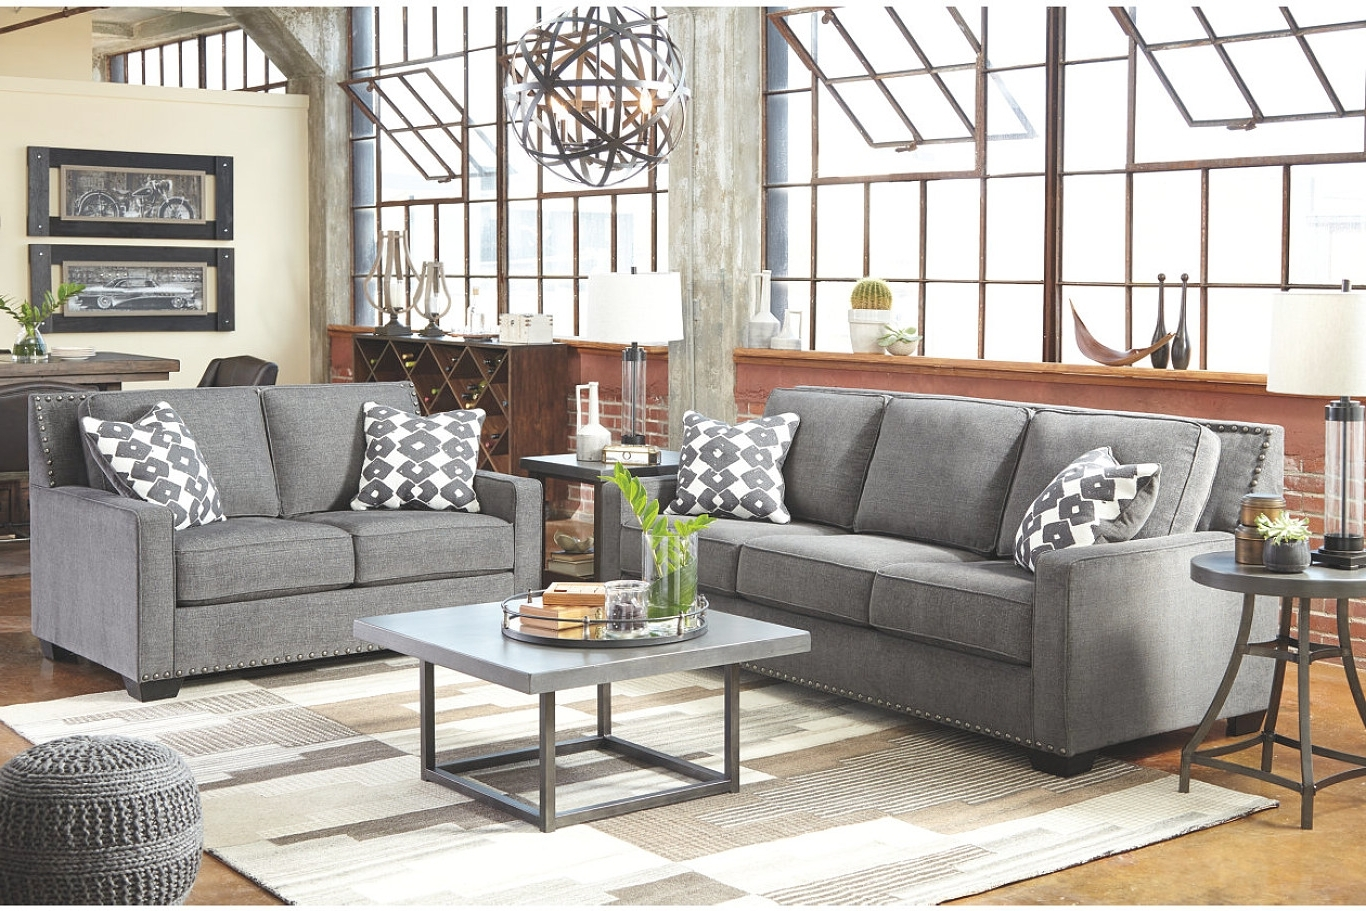 Famous Discount Sofas Ashley Furniture Living Room Sets Sectionals Rent A Regarding Nebraska Furniture Mart Sectional Sofas (View 6 of 20)